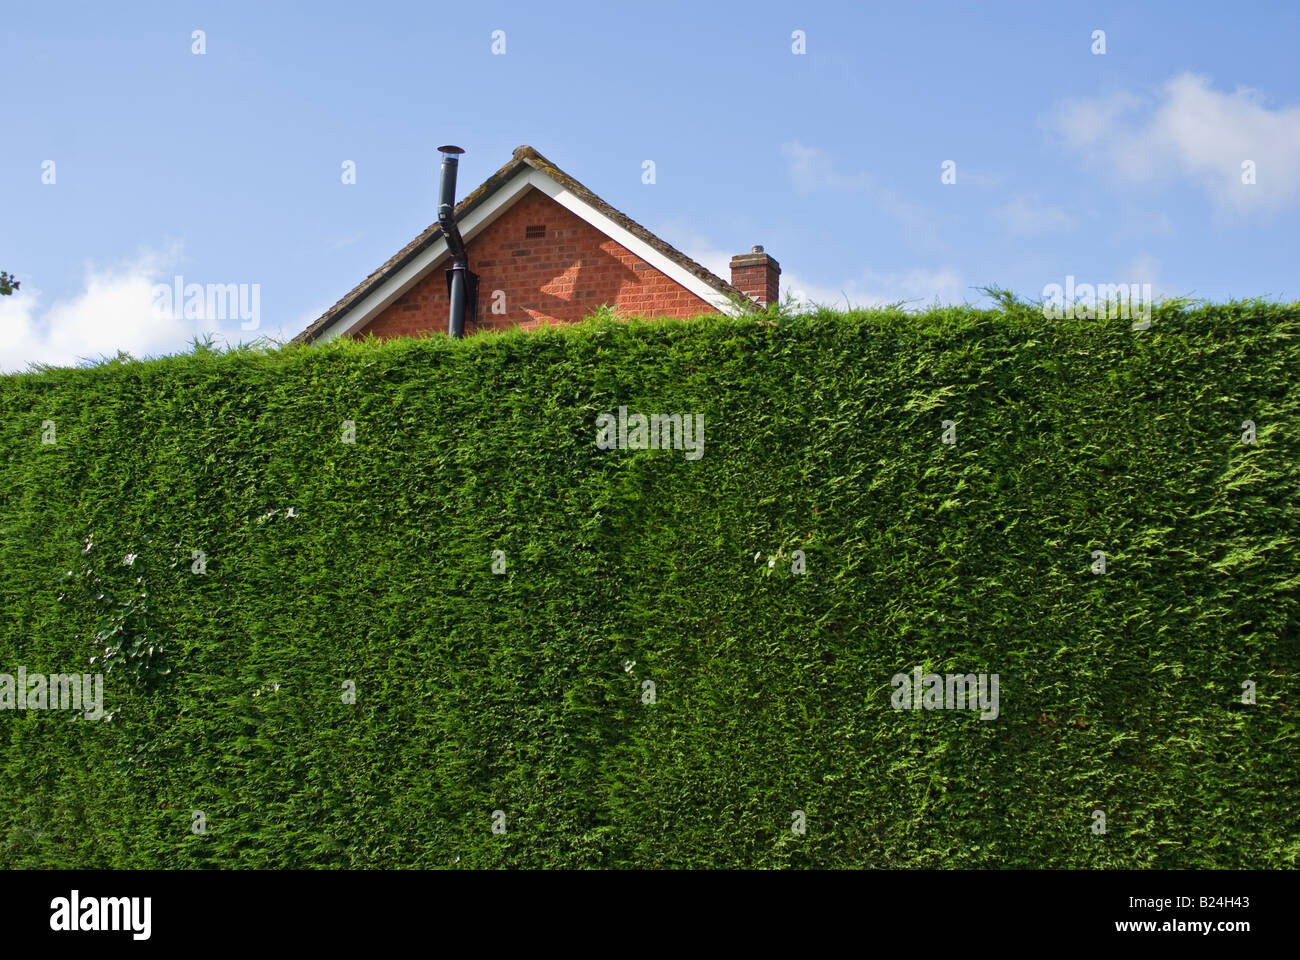 Tall leylandii evergreen conifer hedge grown to conceal new property on a neighbouring plot - Stock Image